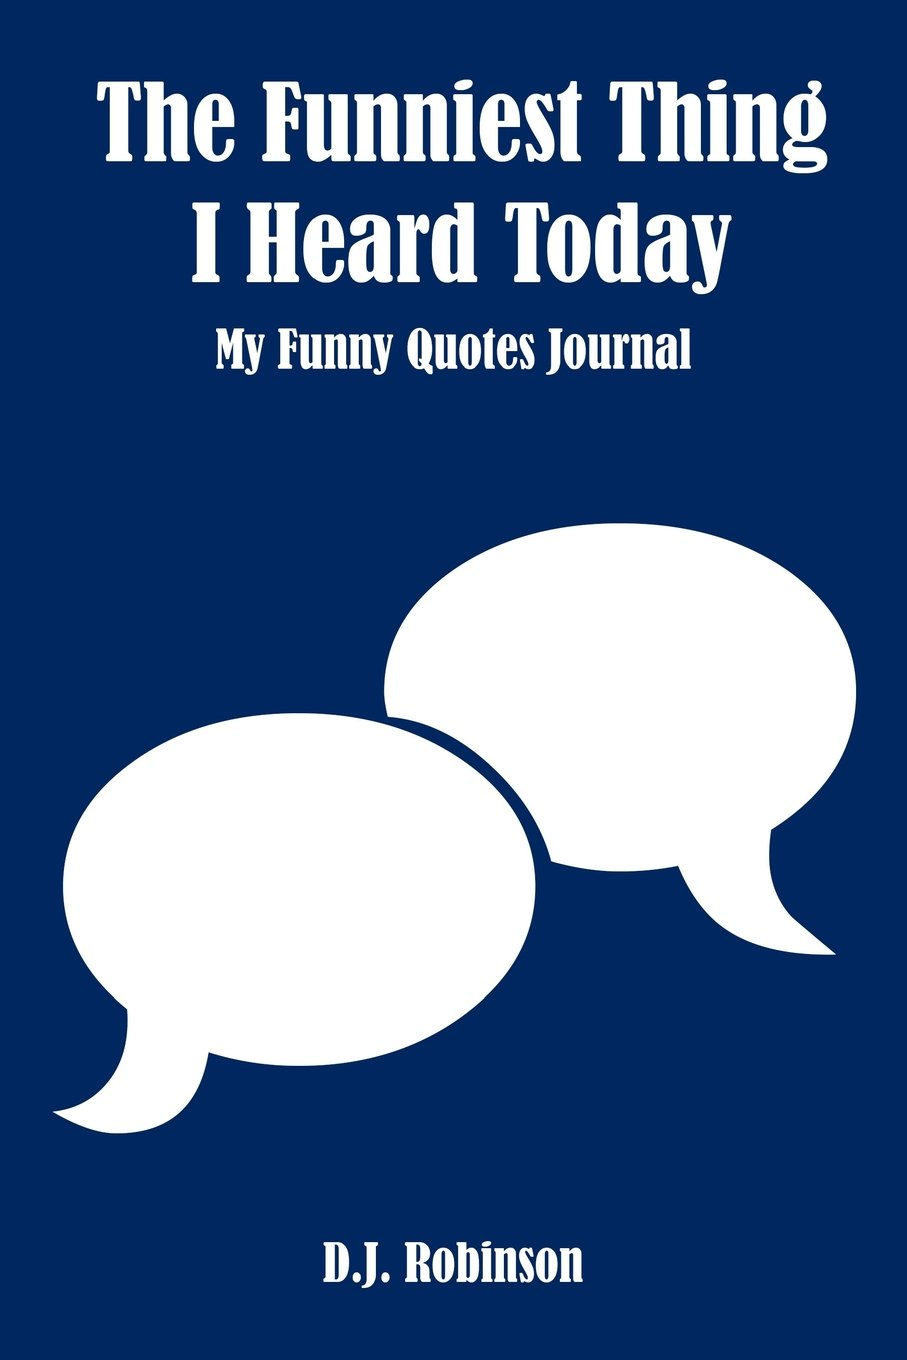 The Funniest Thing I Heard Today My Funny Quotes Journal D J